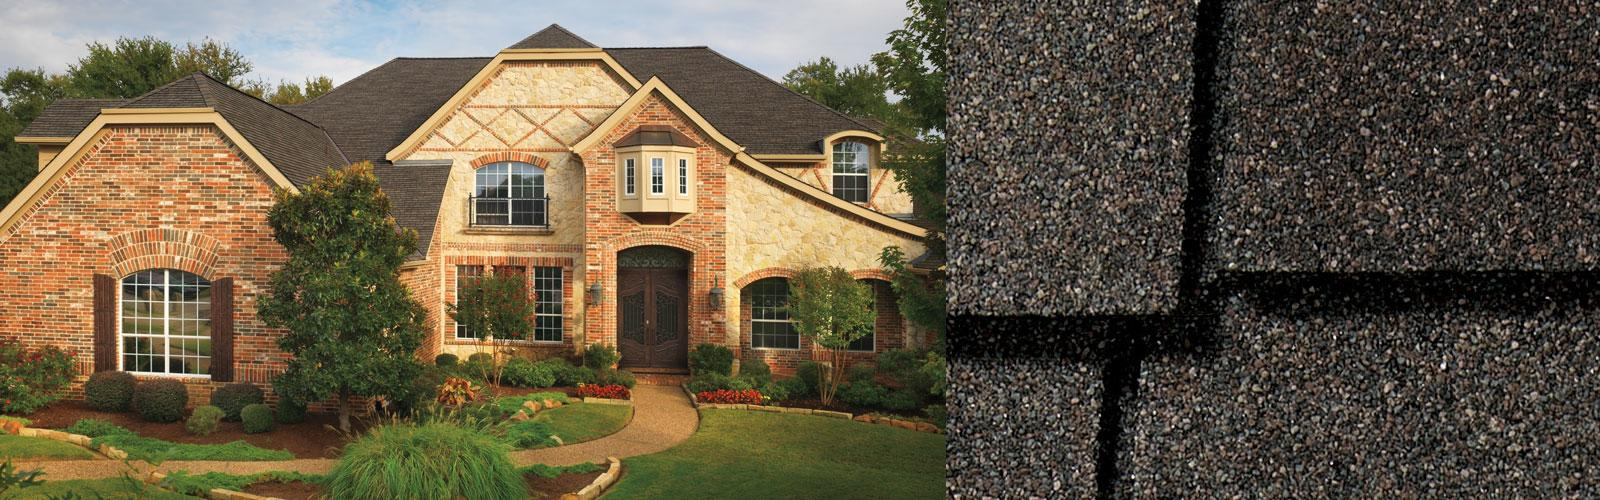 Glen Burnie Roofing Images